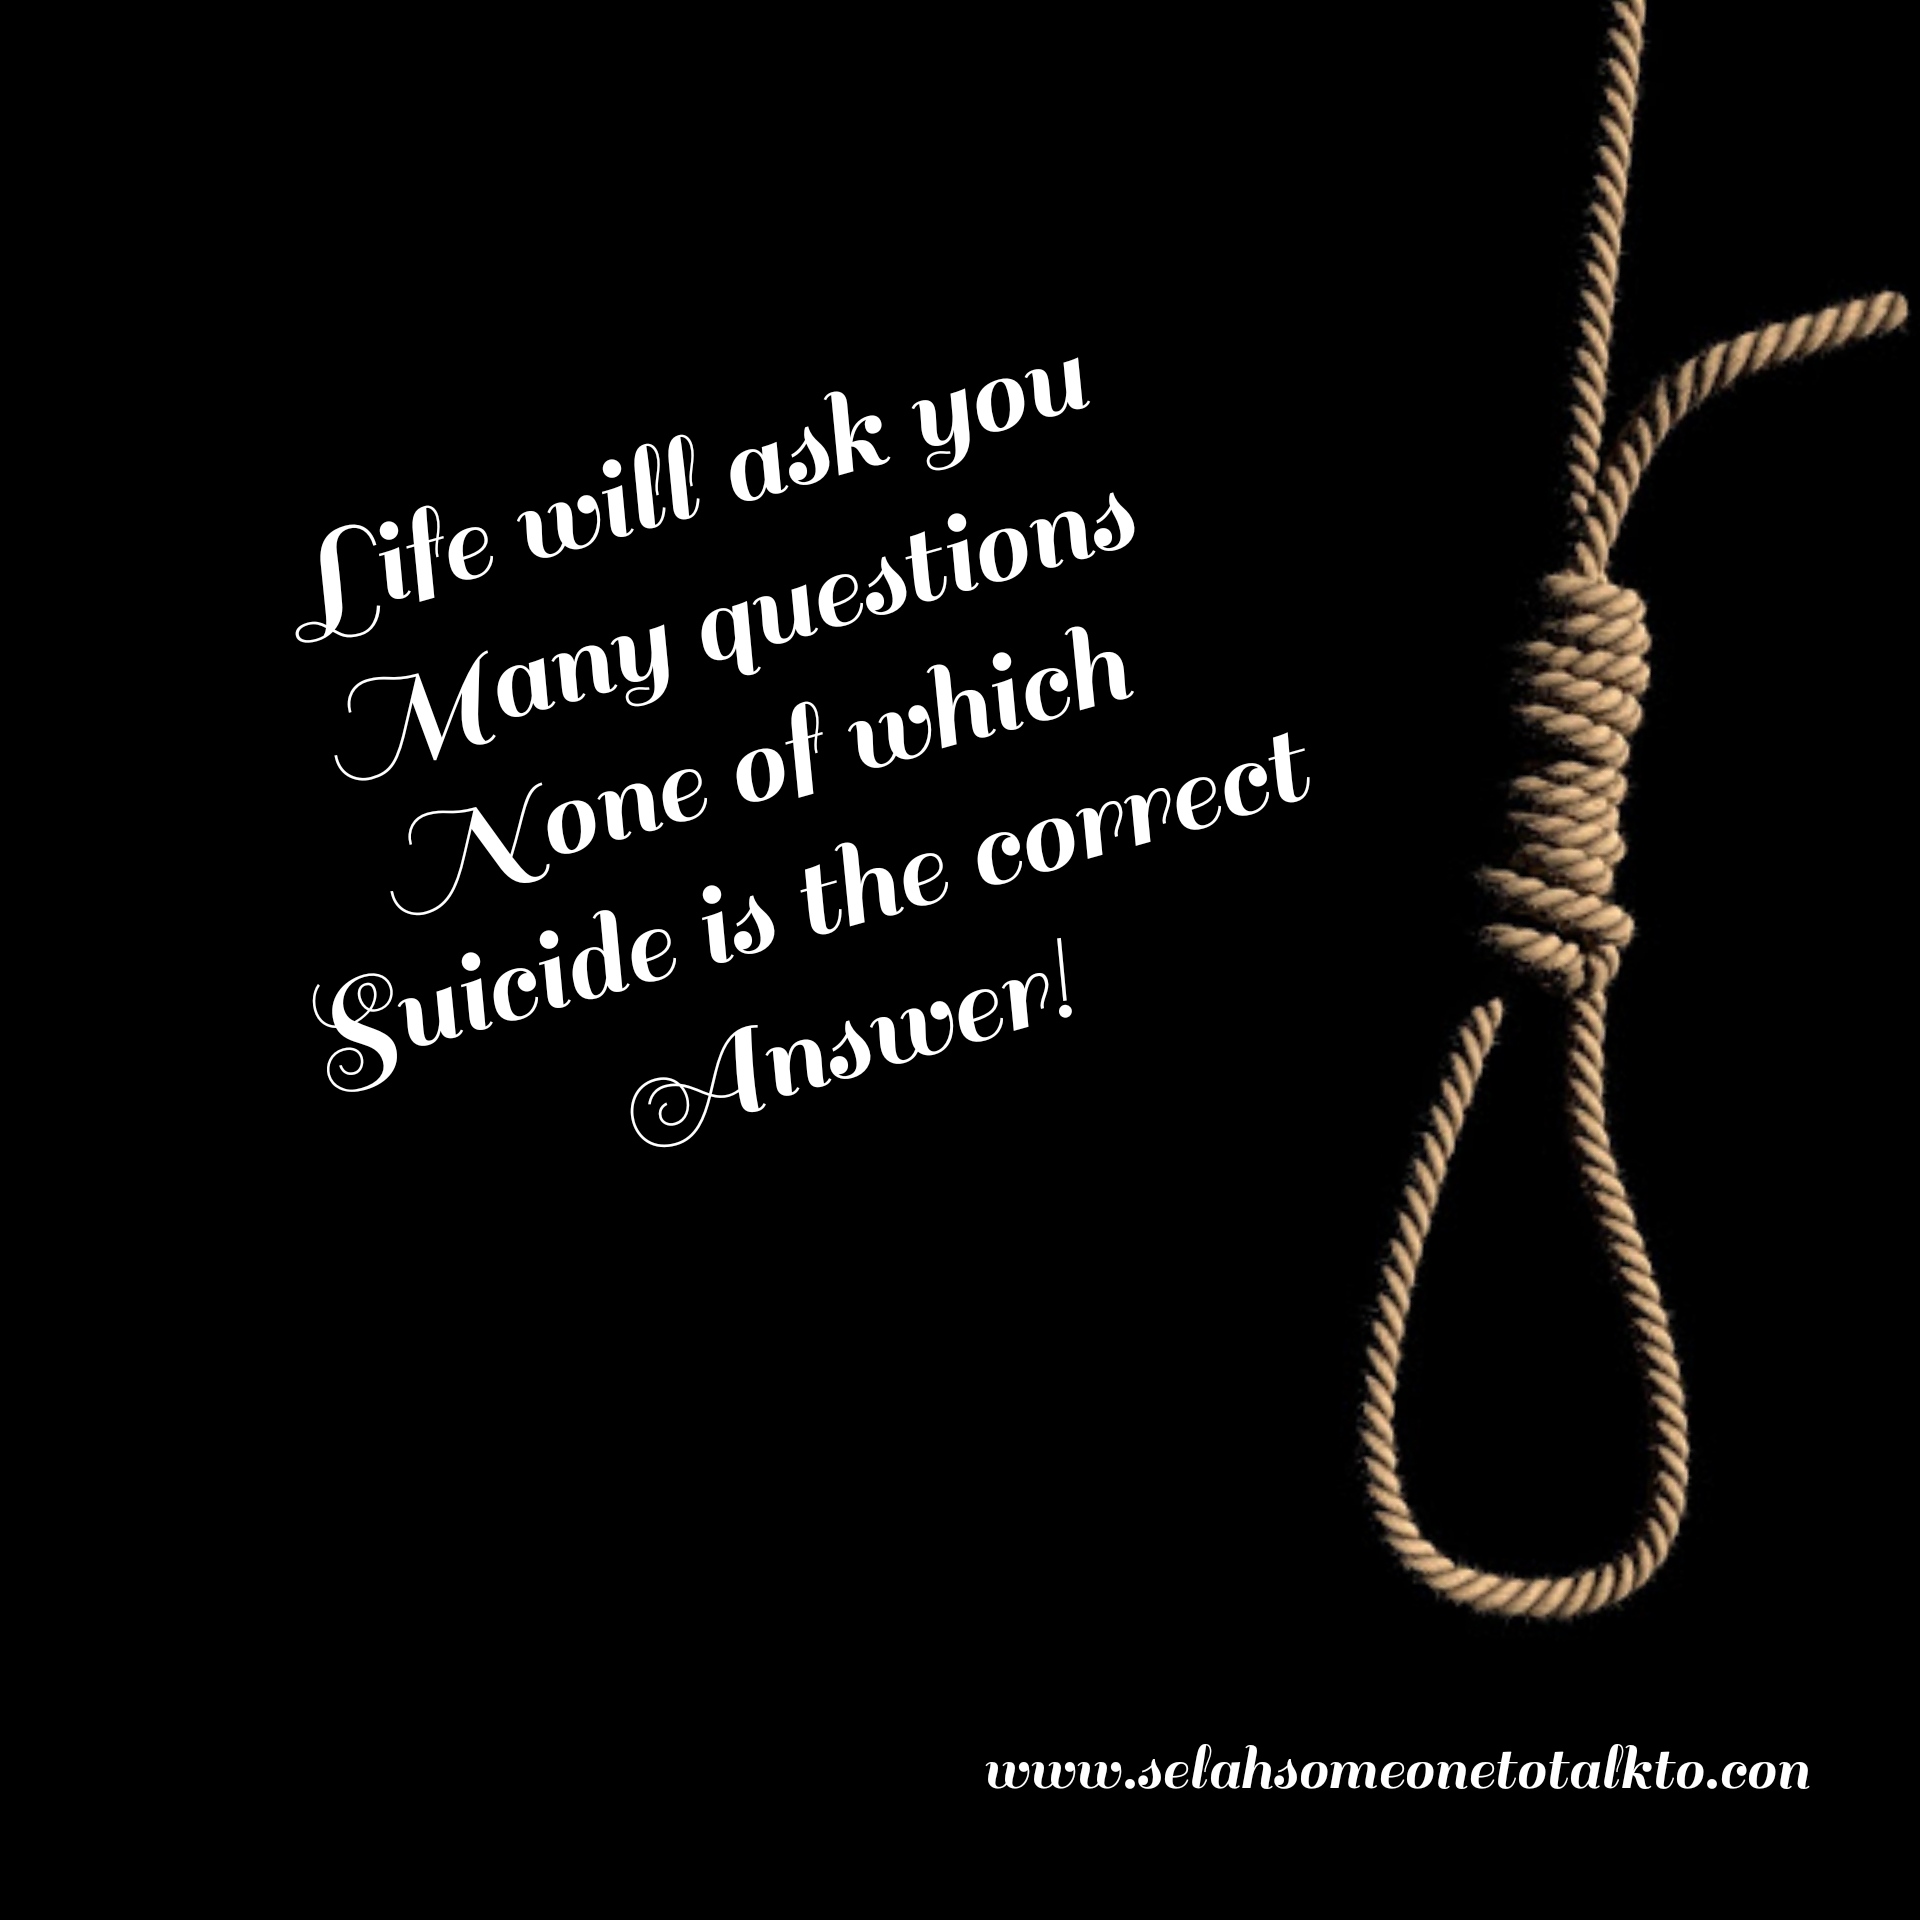 No To Suicide